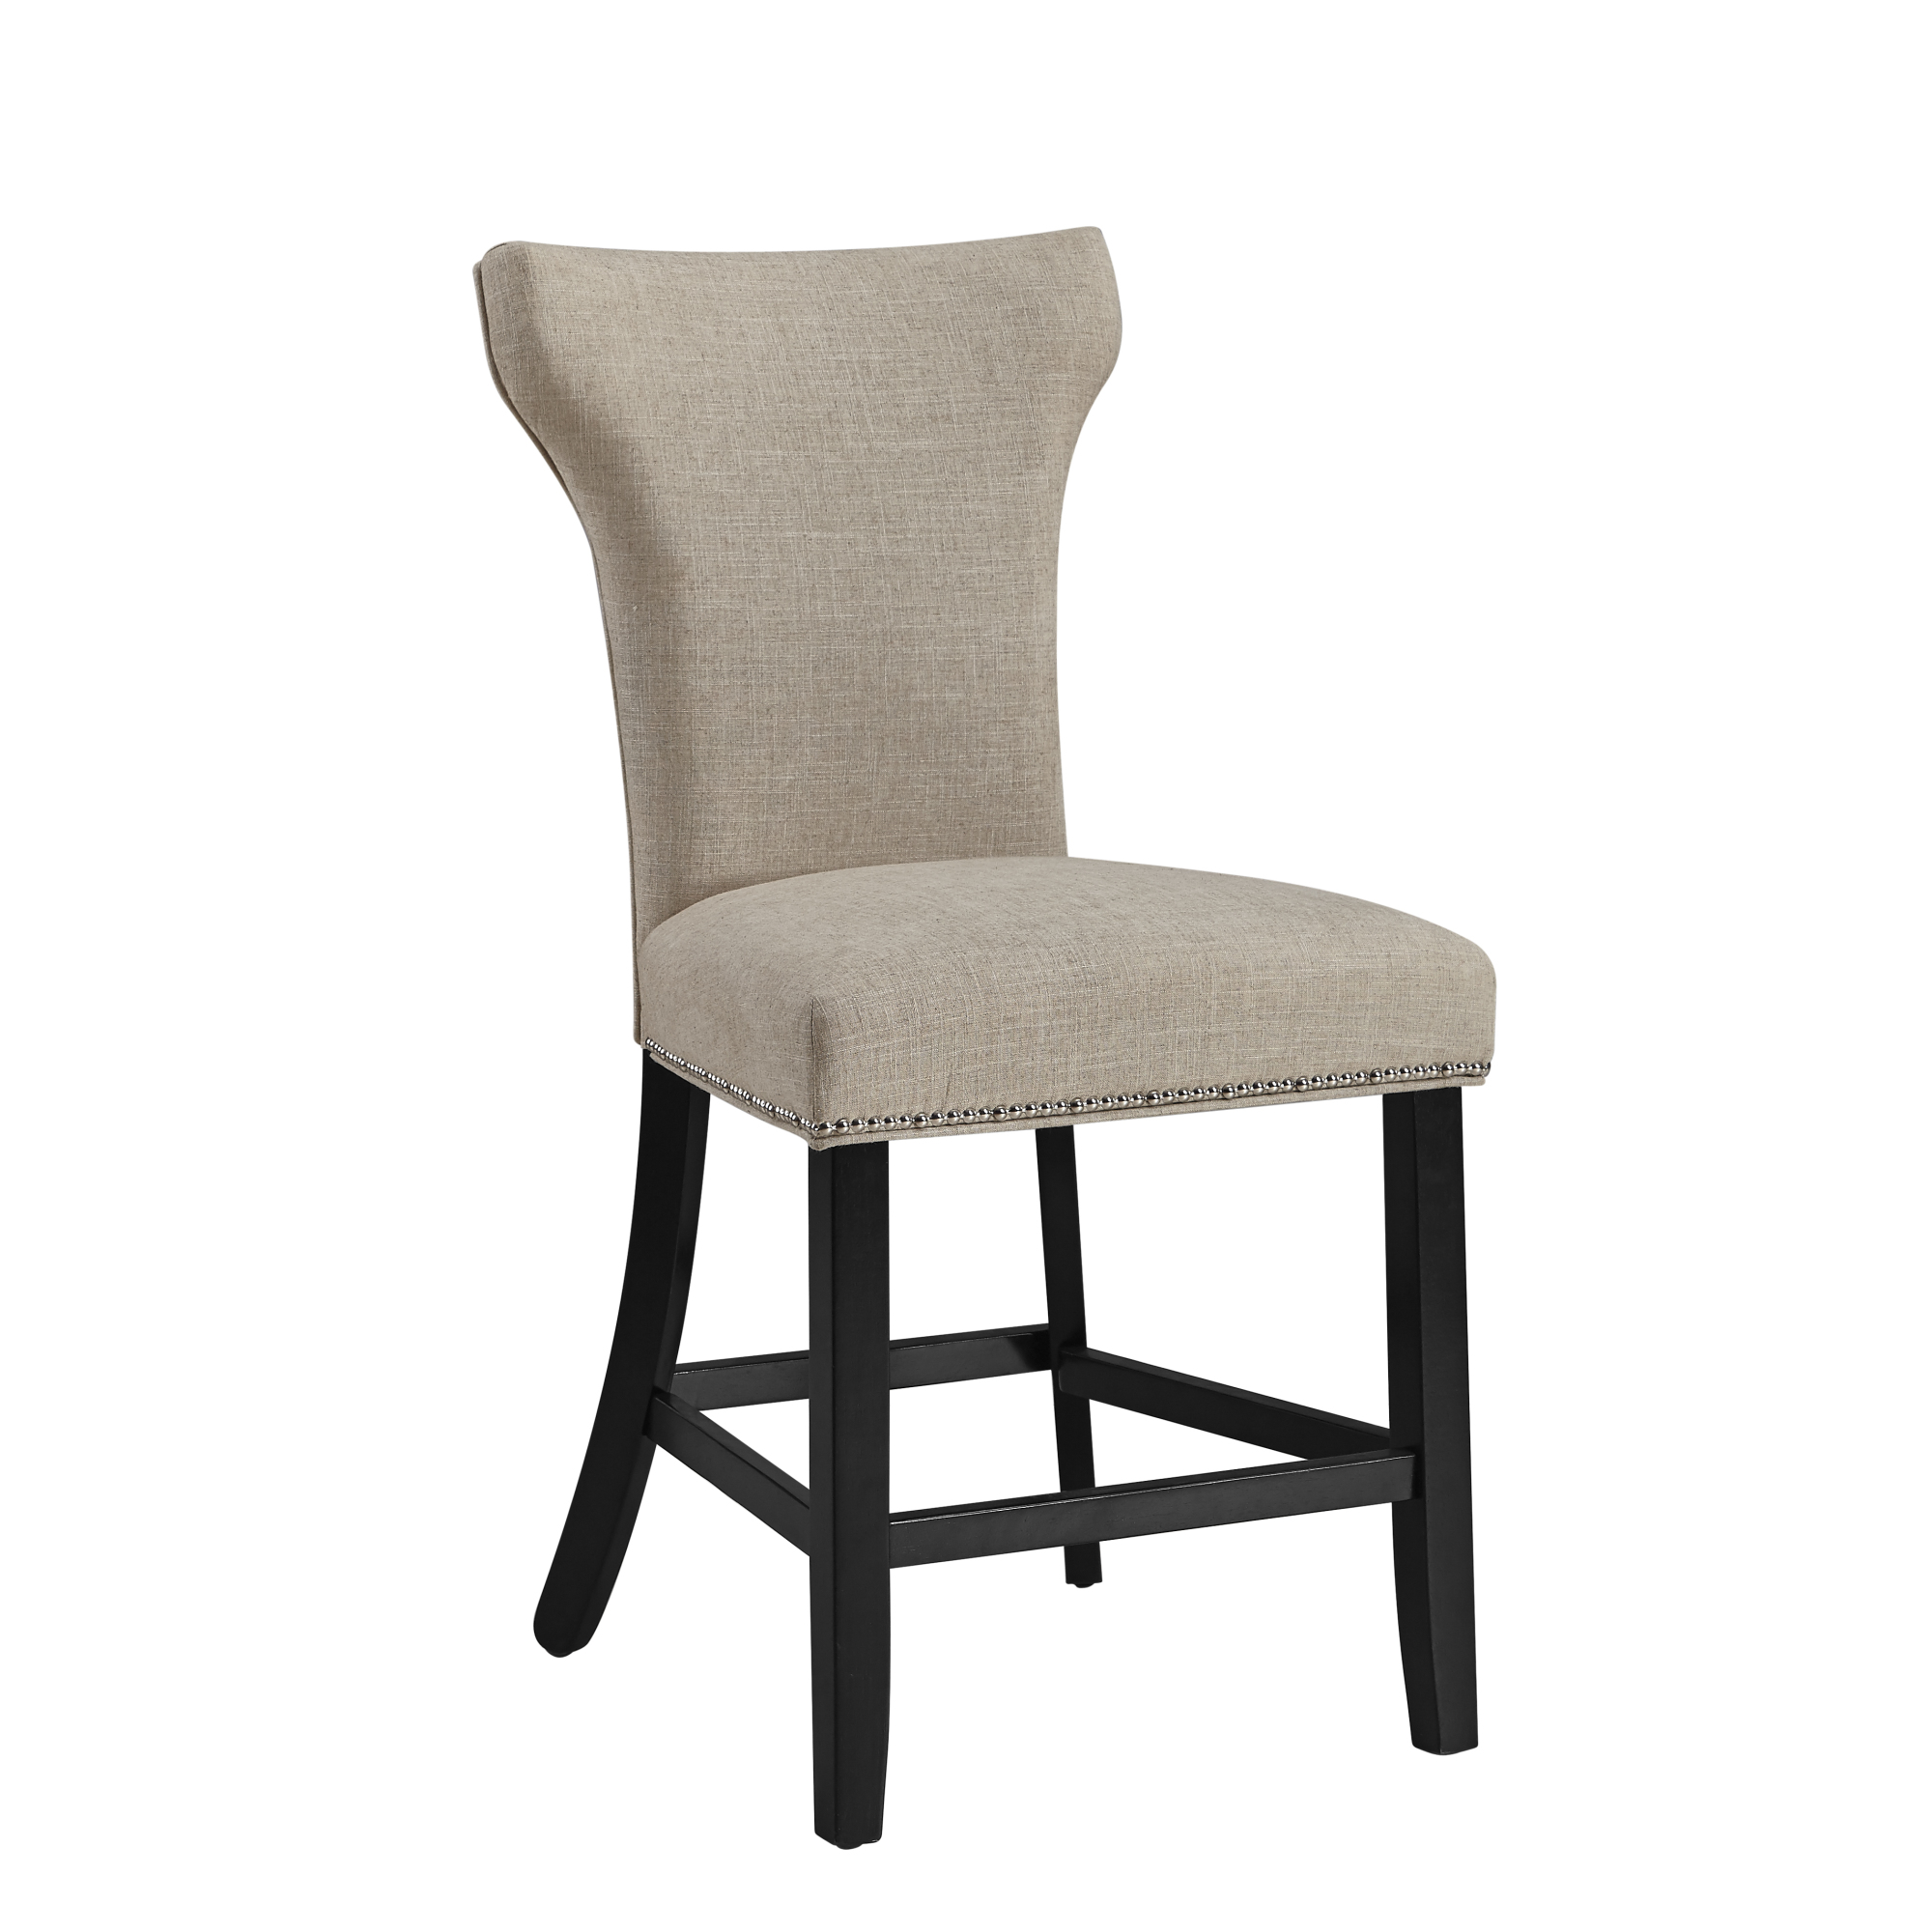 Belgian Luxe Nelson Counter Stool by Bassett Mirror at Alison Craig Home Furnishings